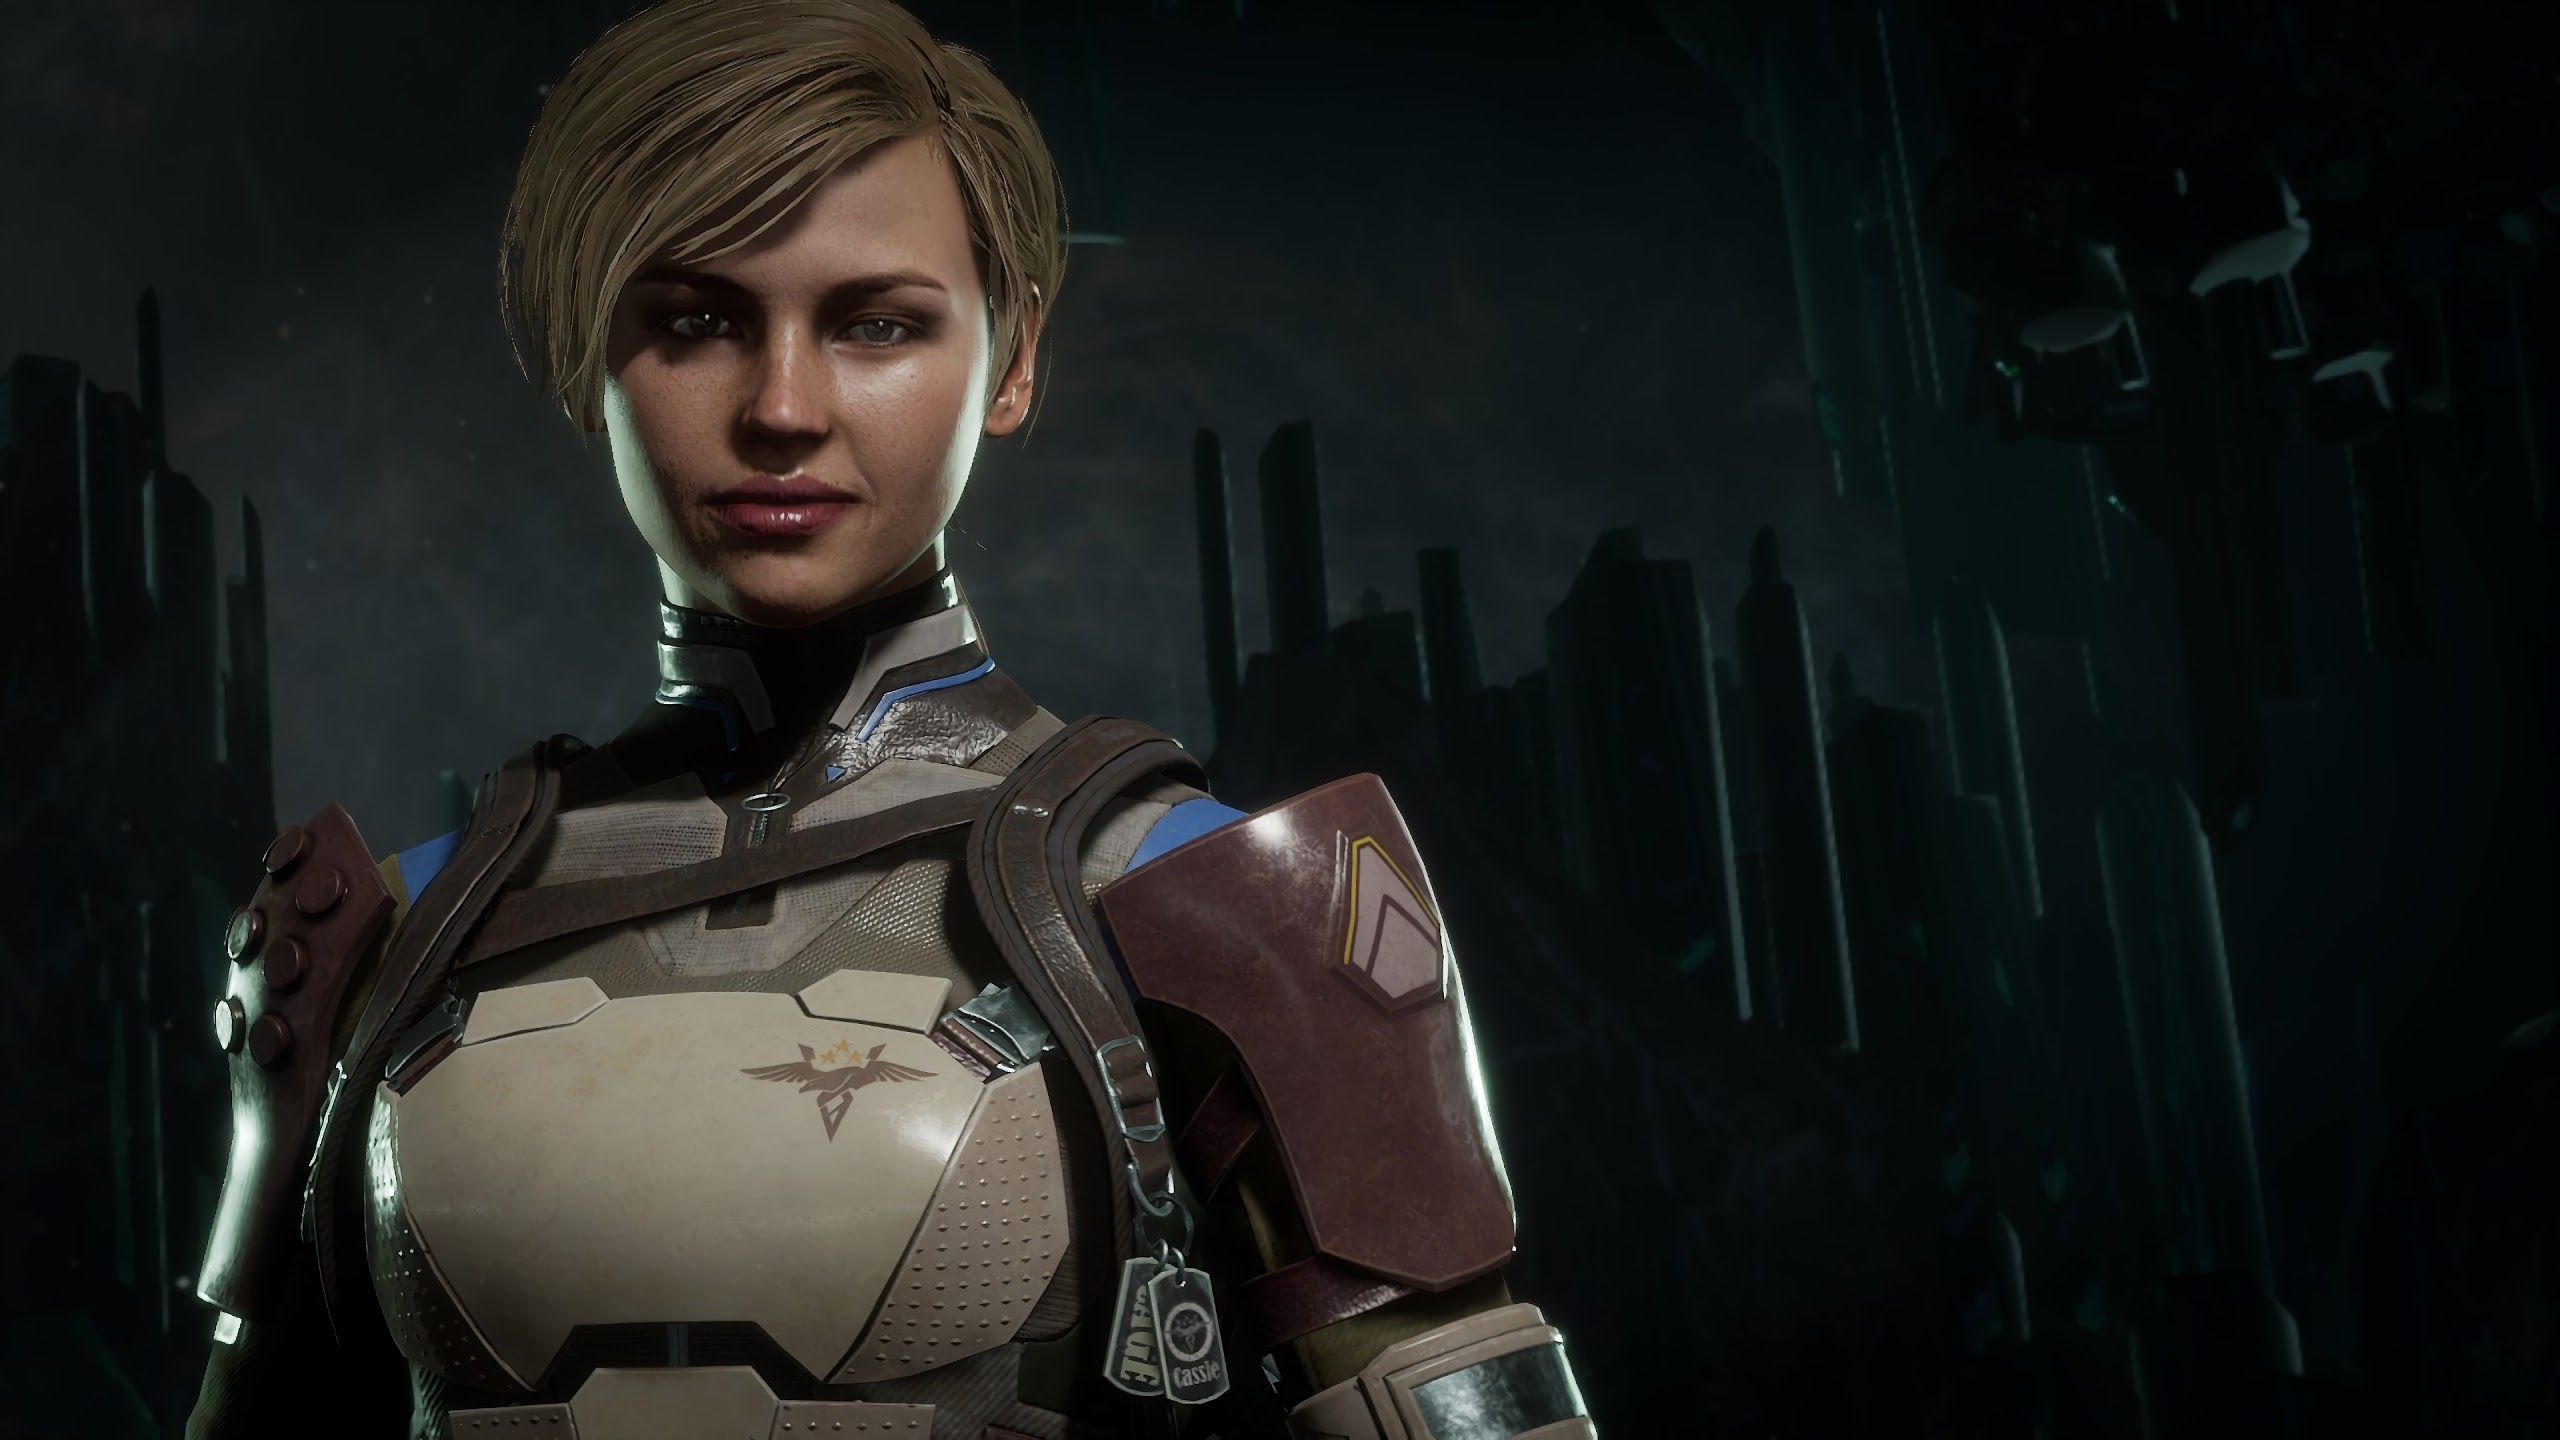 Cassie Cage Wallpapers - Top Free Cassie Cage Backgrounds - WallpaperAccess